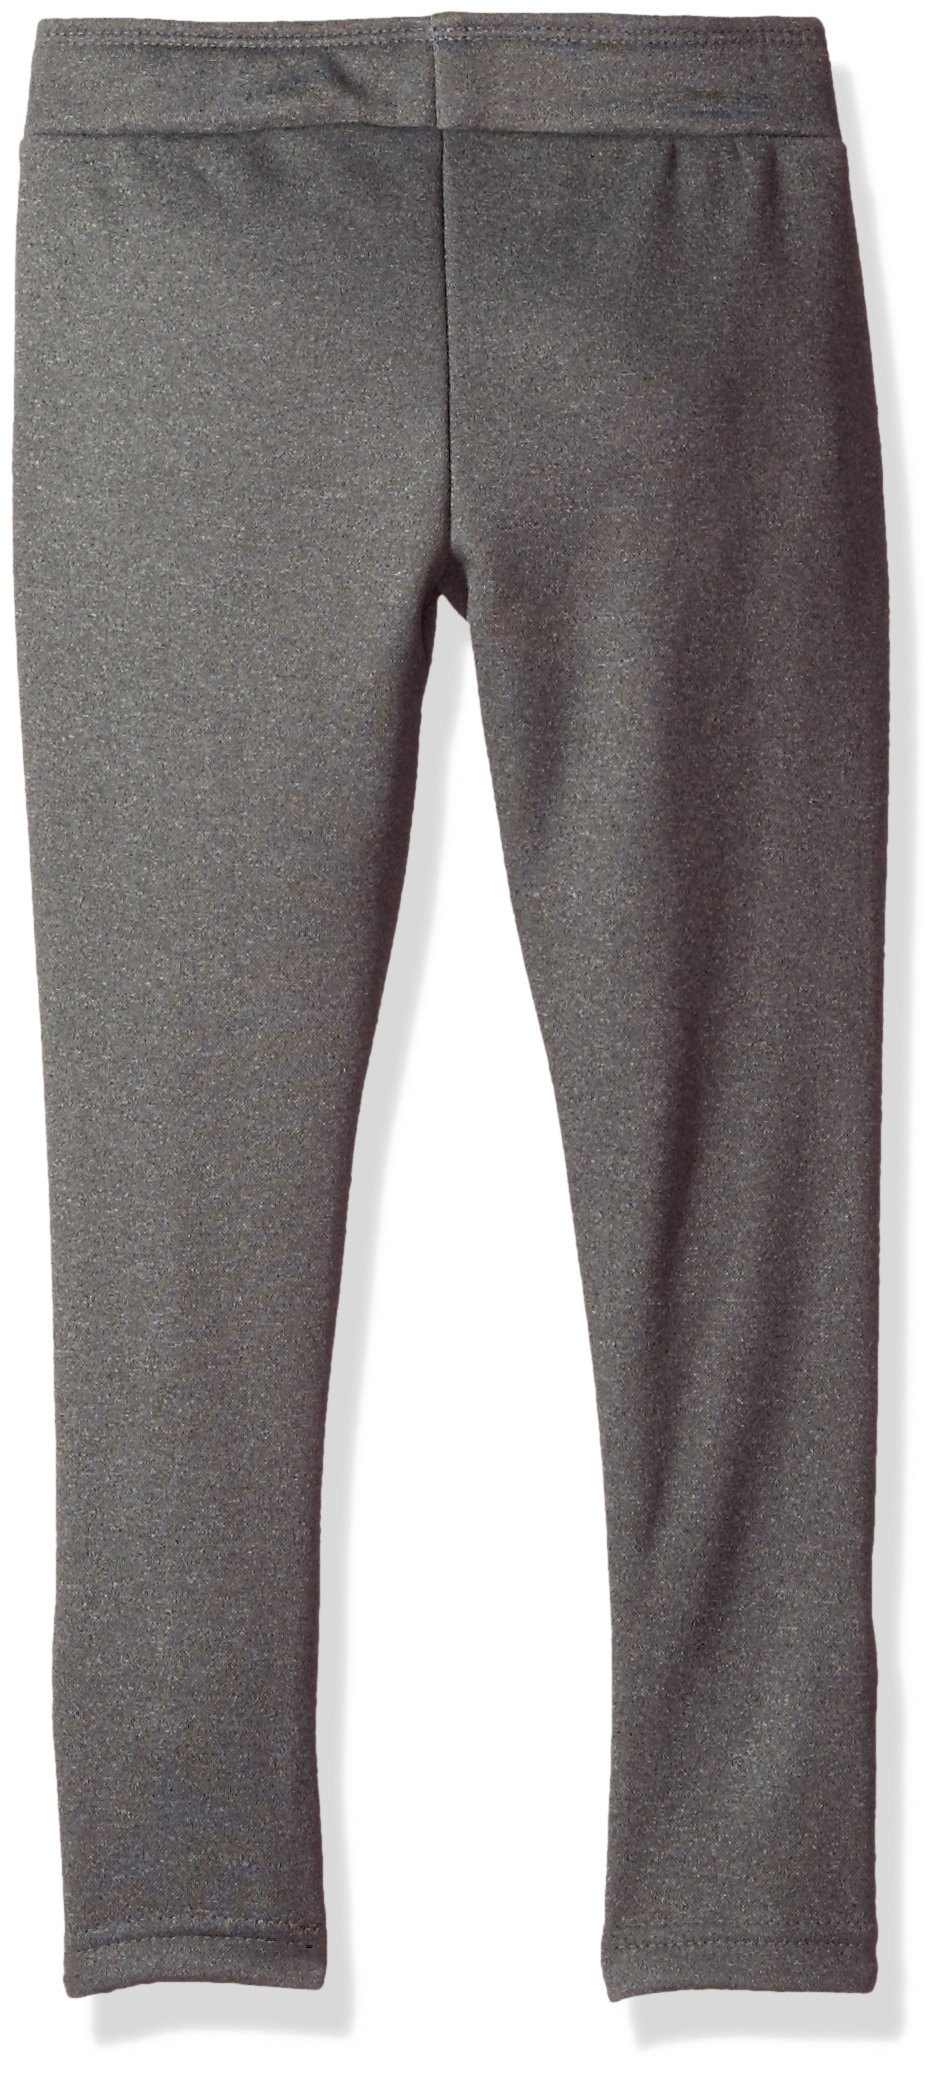 OshKosh B'Gosh Girls' Toddler Fleece Jogger Pants, Grey, 3T by OshKosh B'Gosh (Image #2)